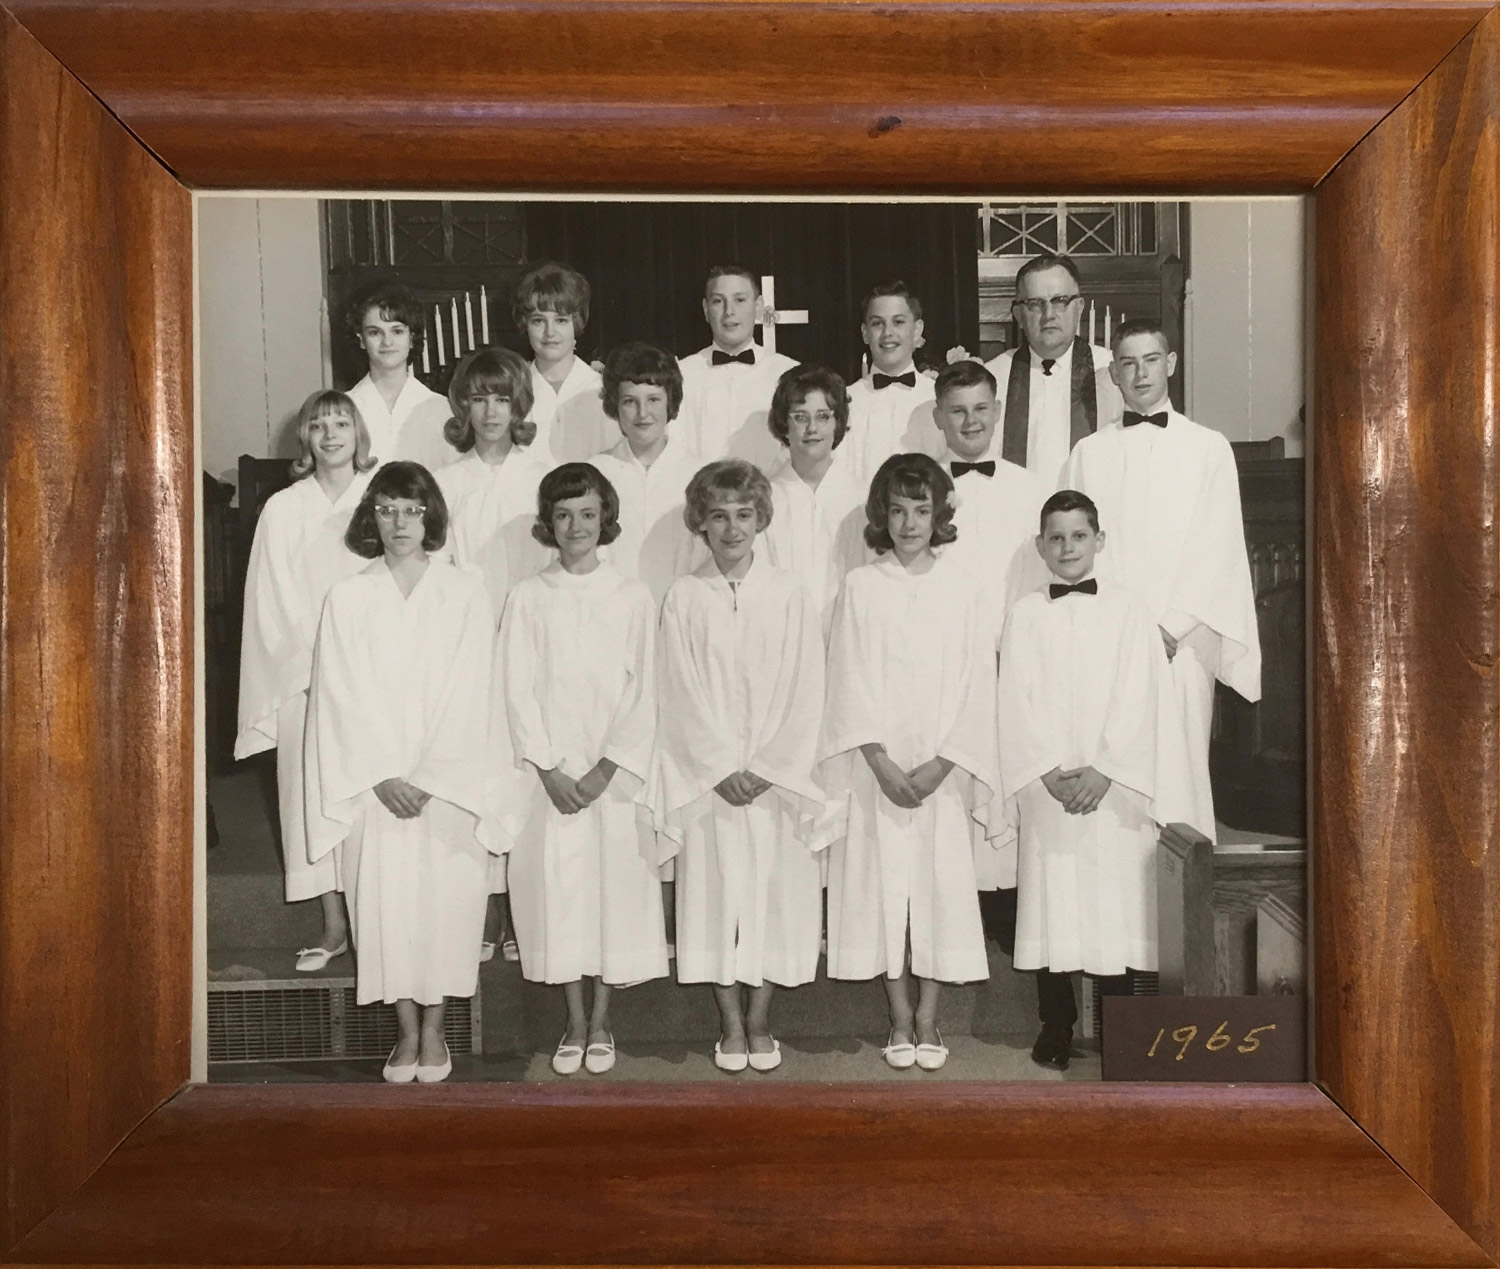 1965 Confirmation Class at St John UCC New Athens